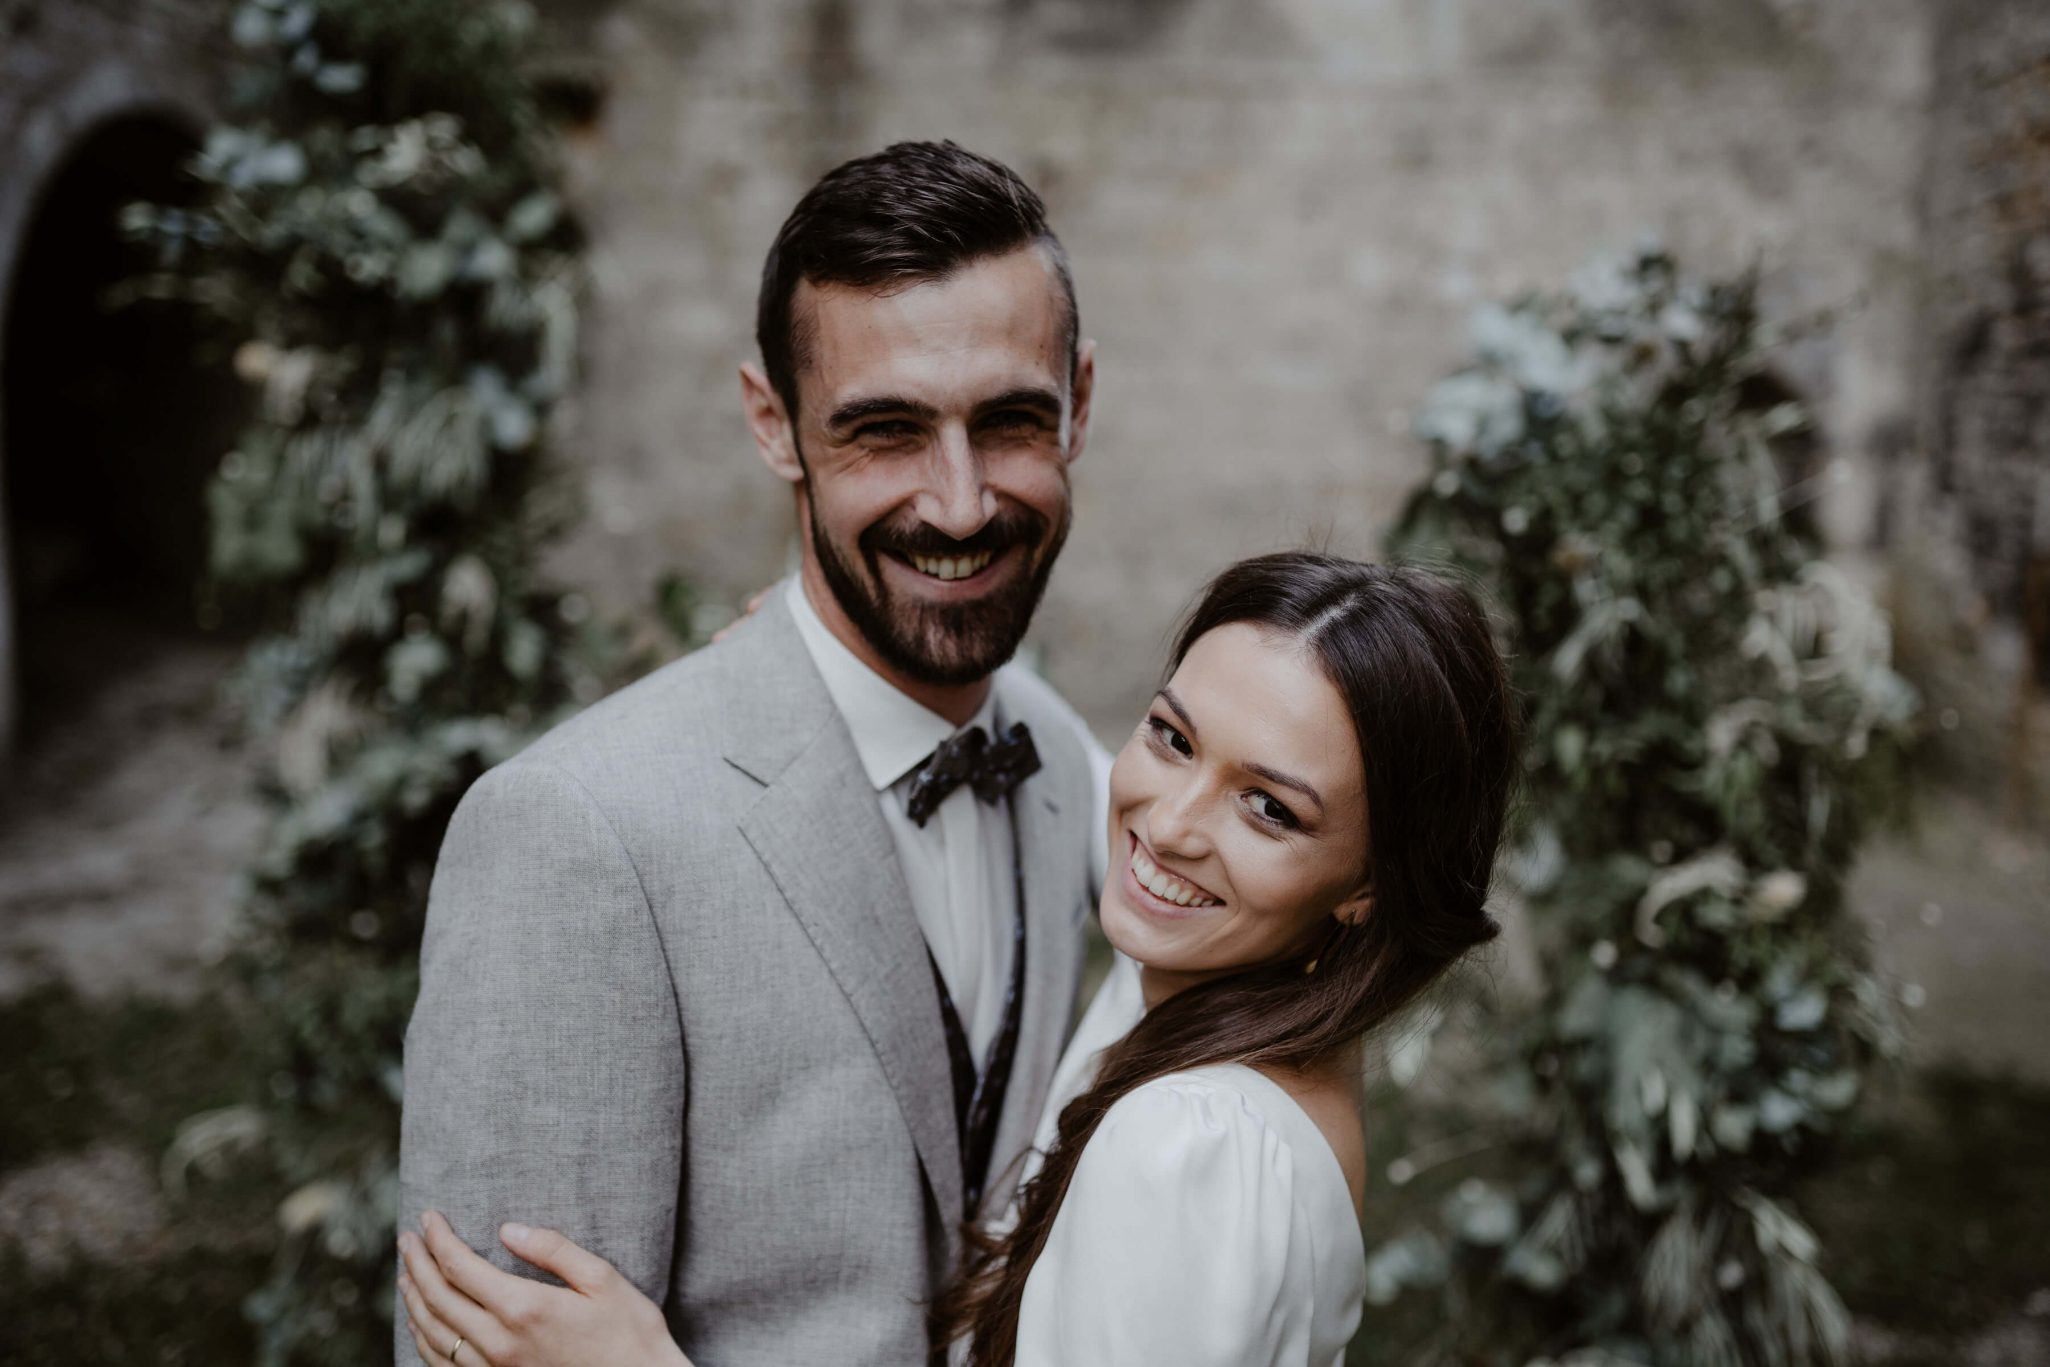 mariage_joie_rire_nature_chic(1)